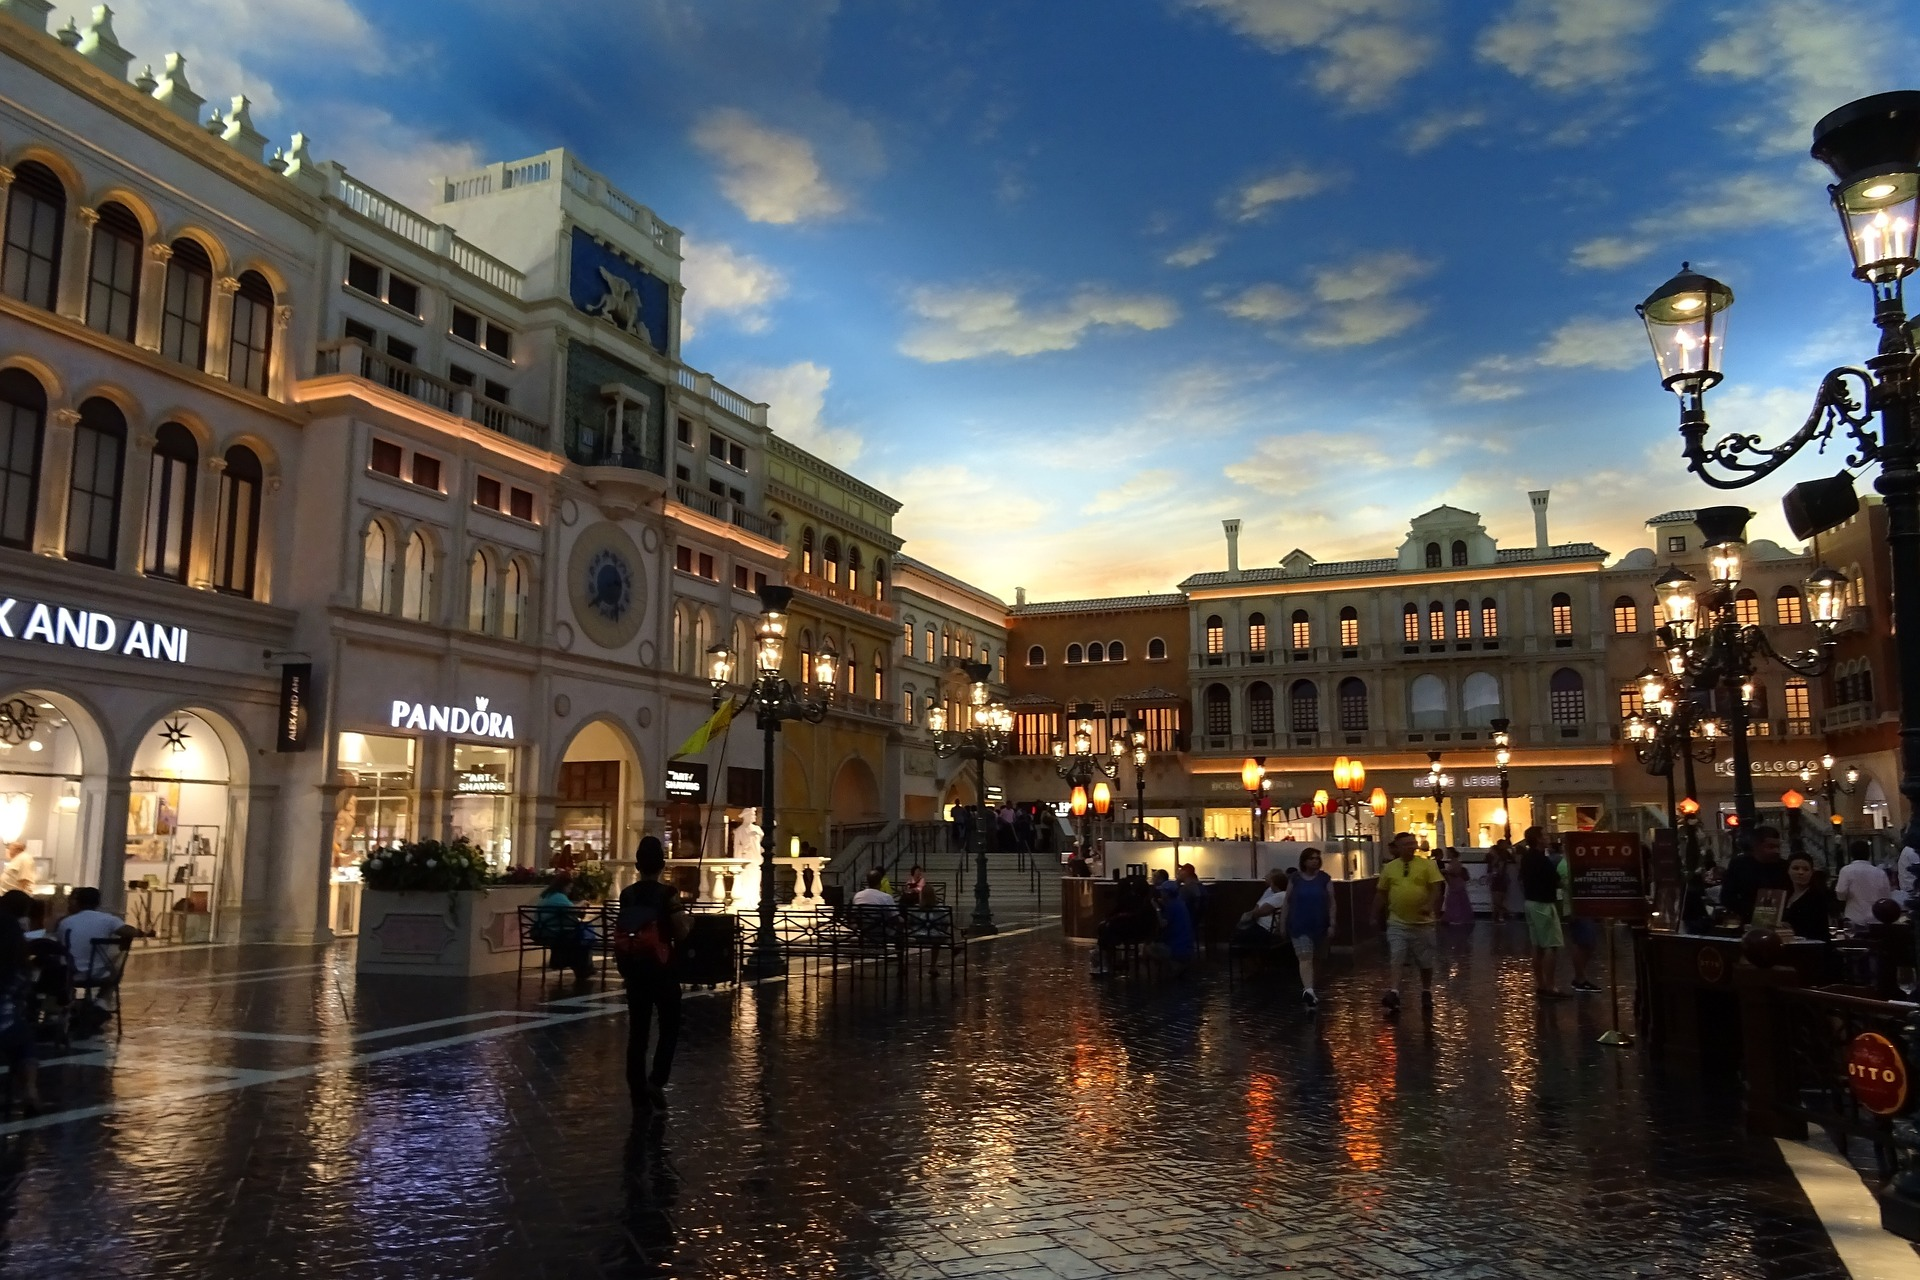 Grand Canal Shoppes and St. Mark's Square at The Venetian, Las Vegas